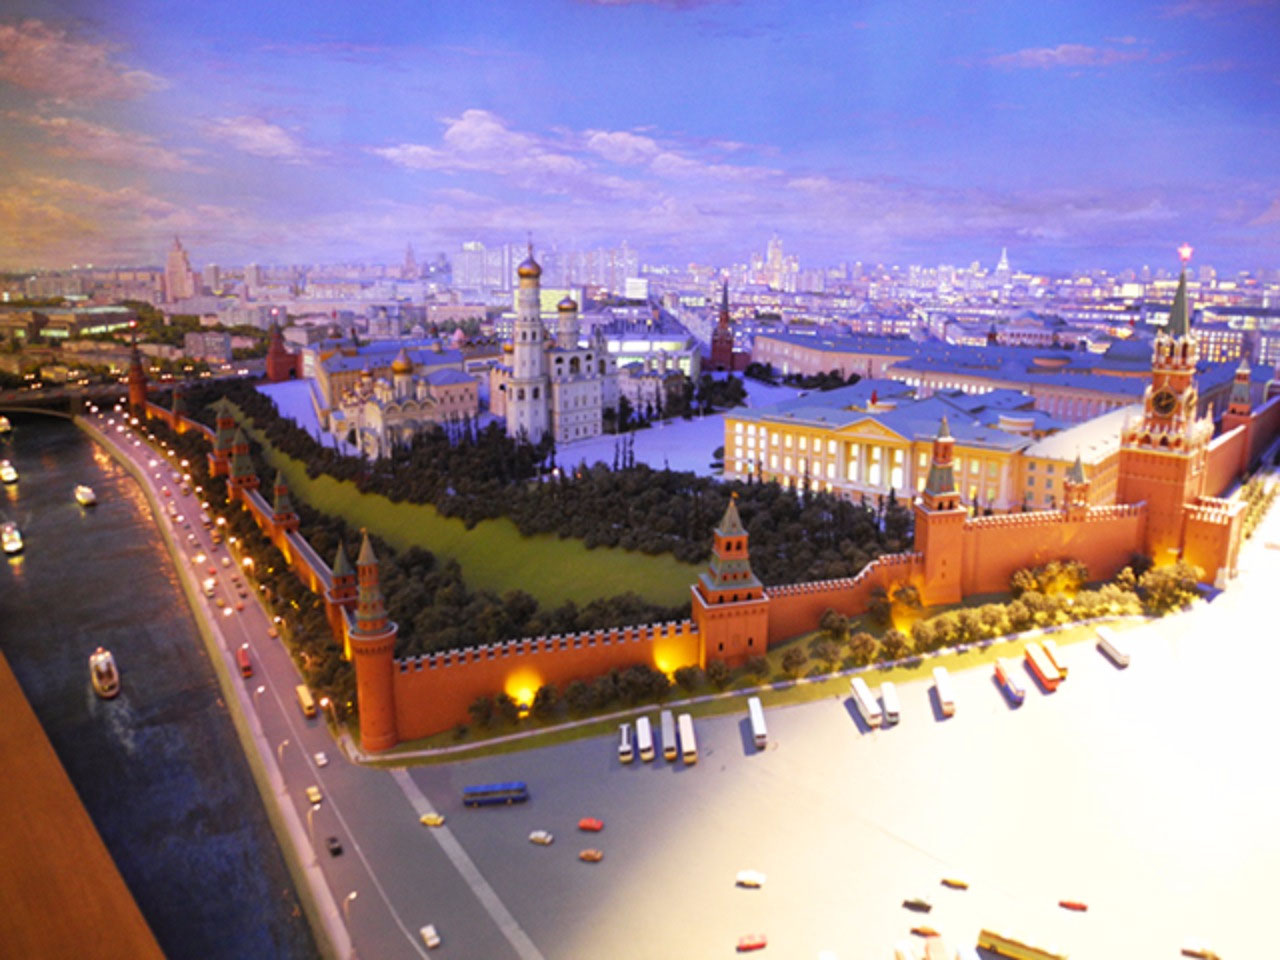 Scale model of the Moscow Kremlin